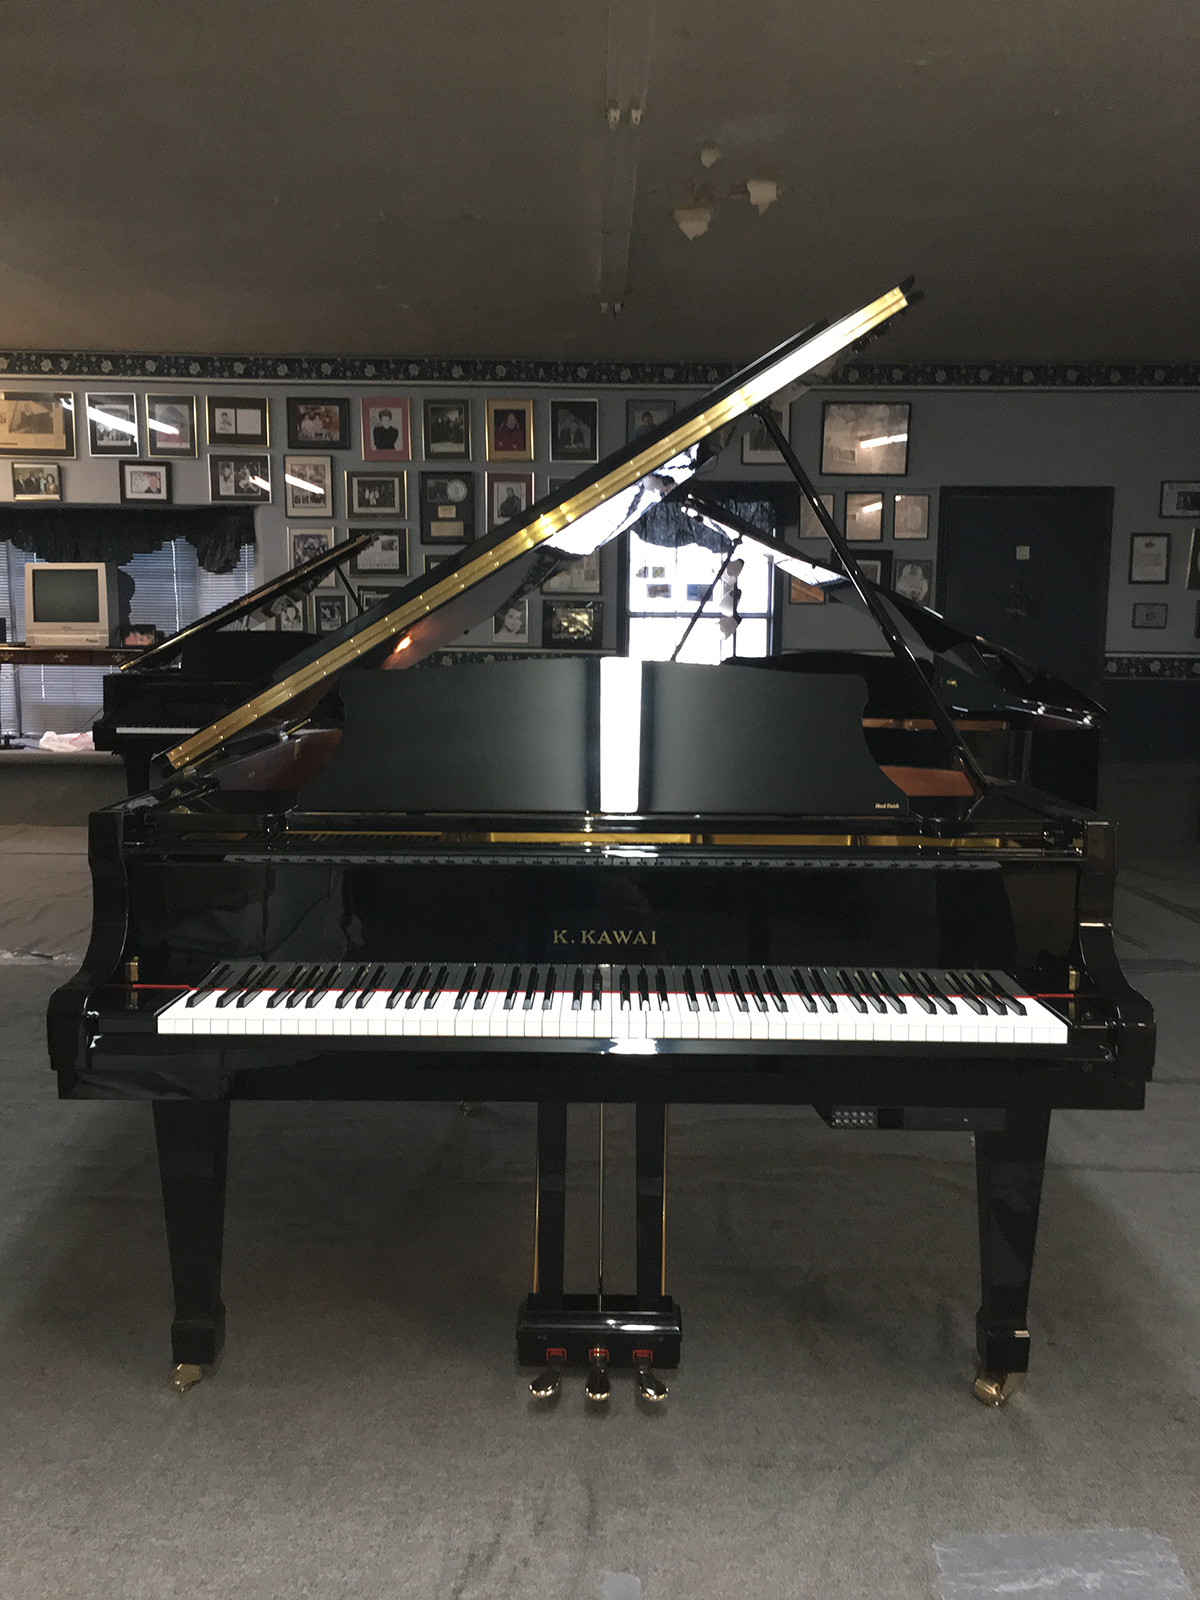 Kawai Grand Piano for Sale | Dallas TX